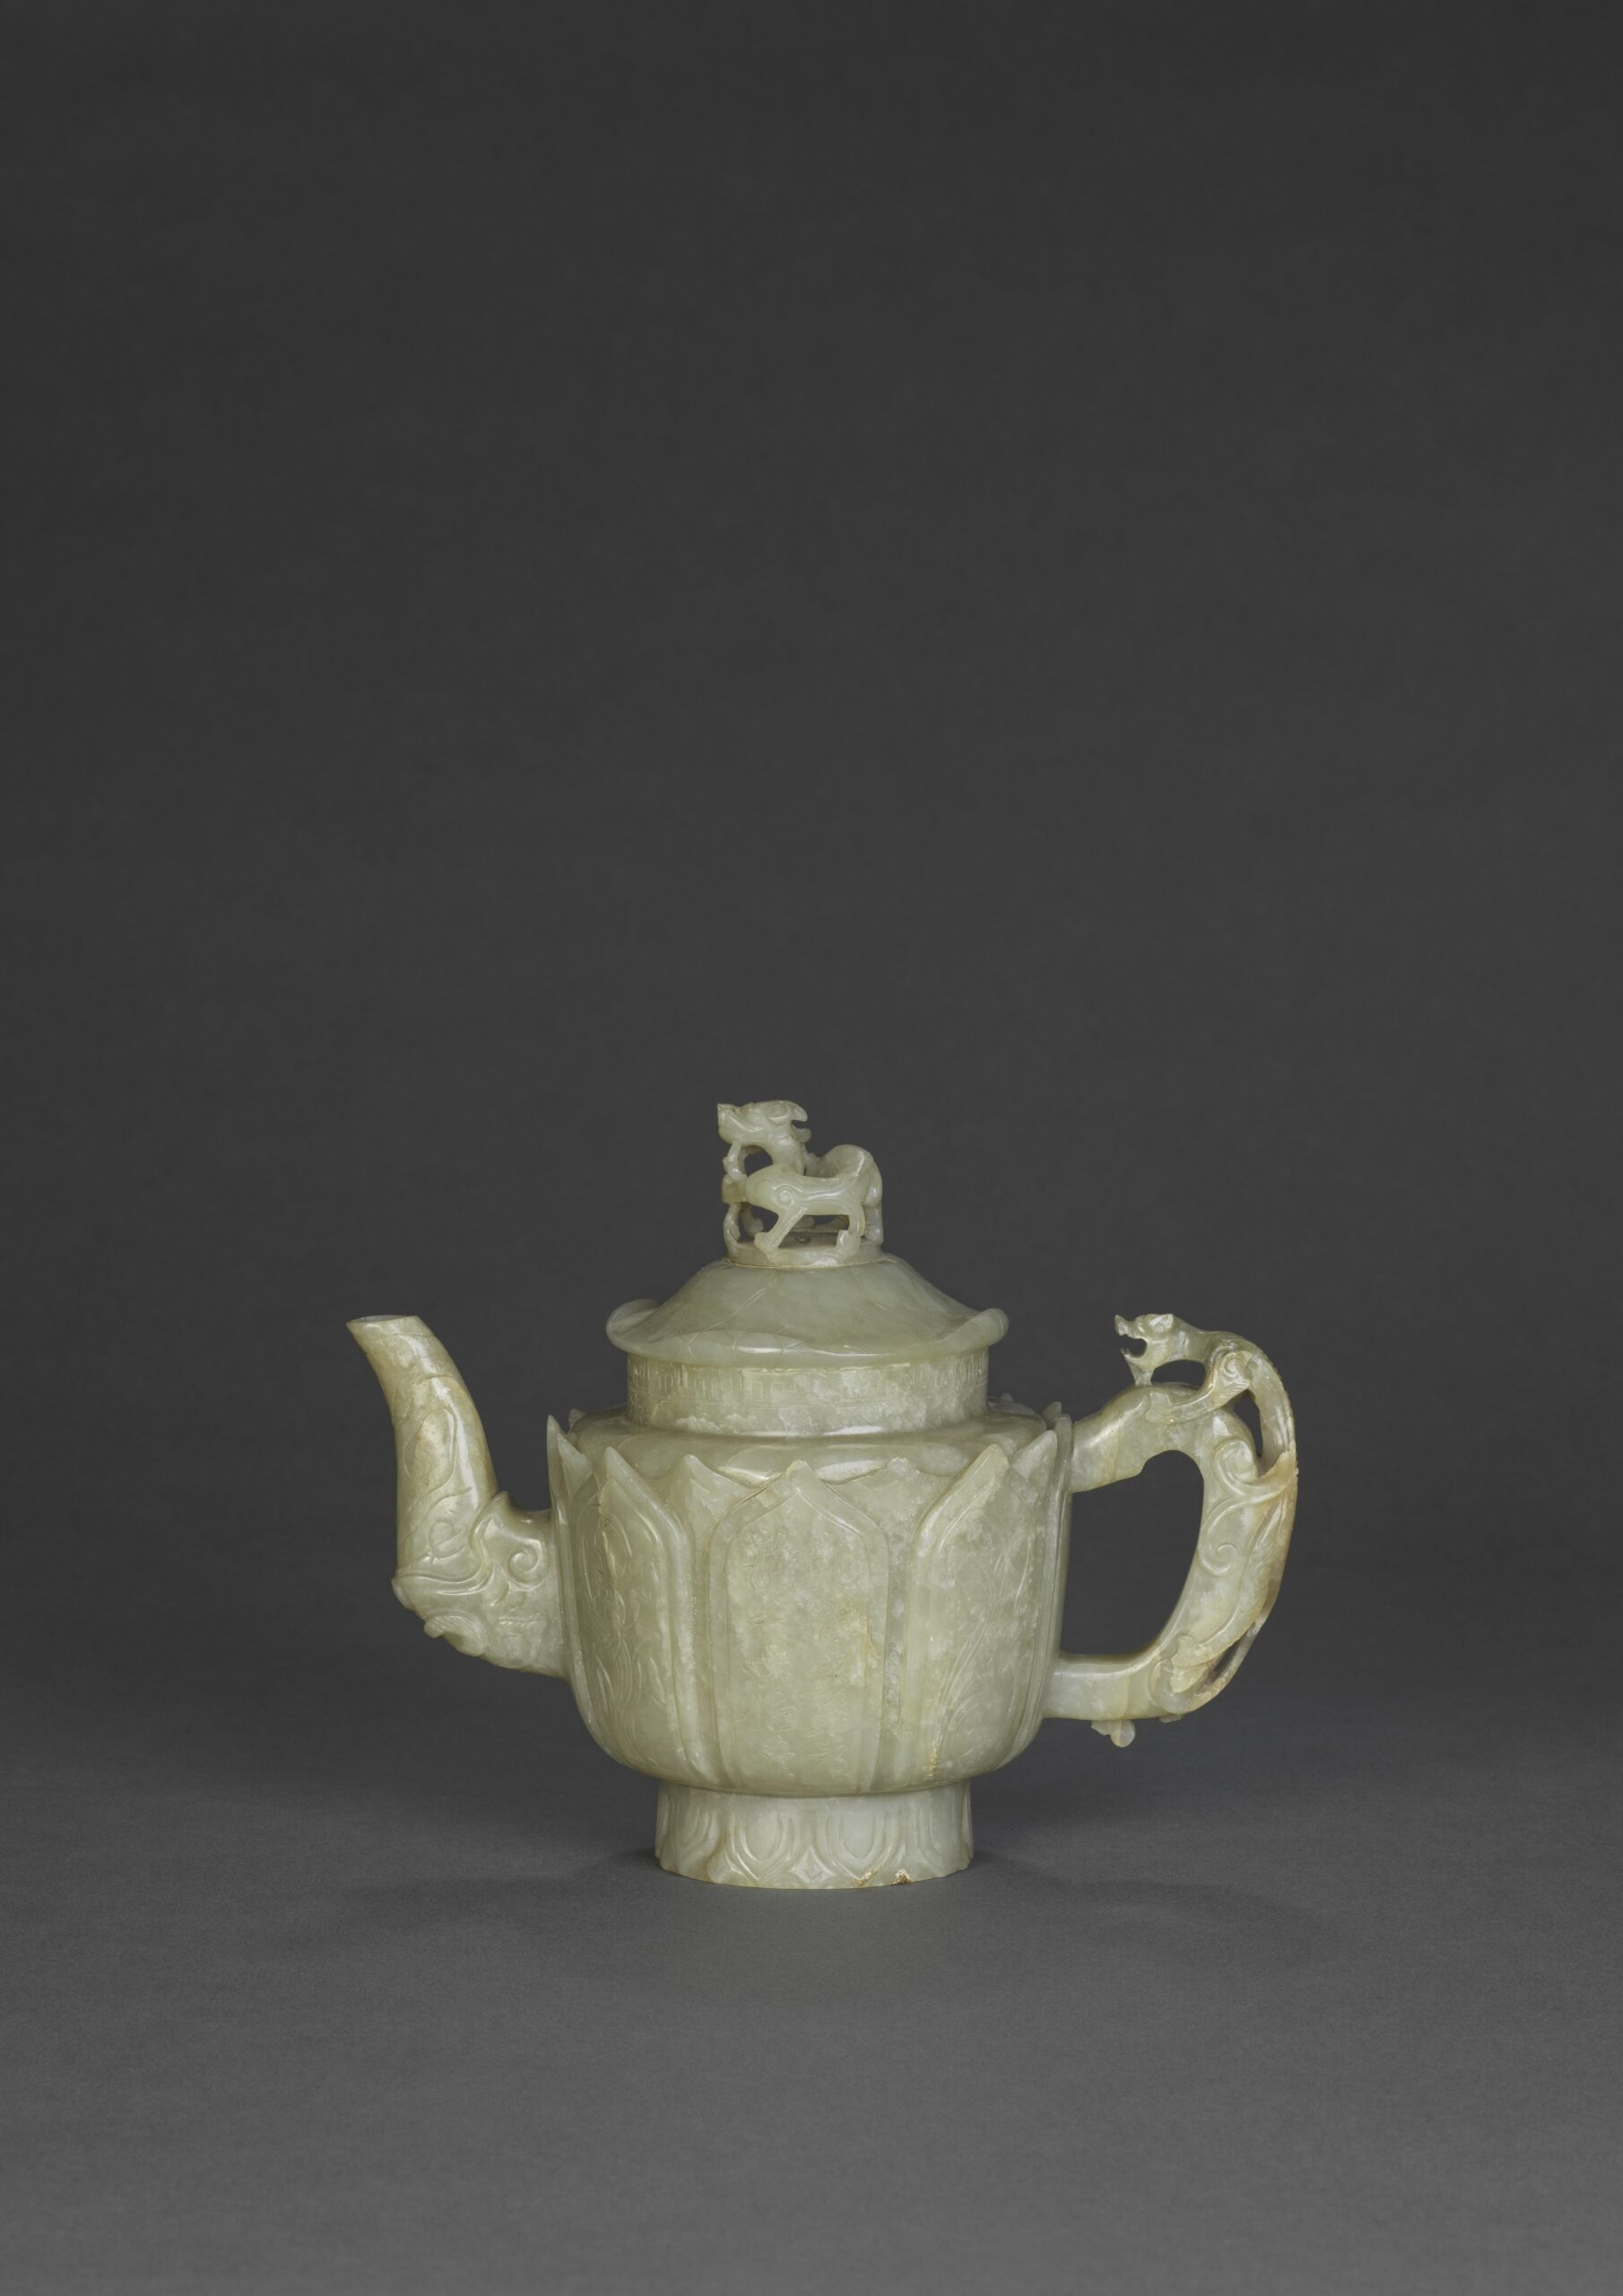 A light celadon jade lotus petal and poem ewer and cover